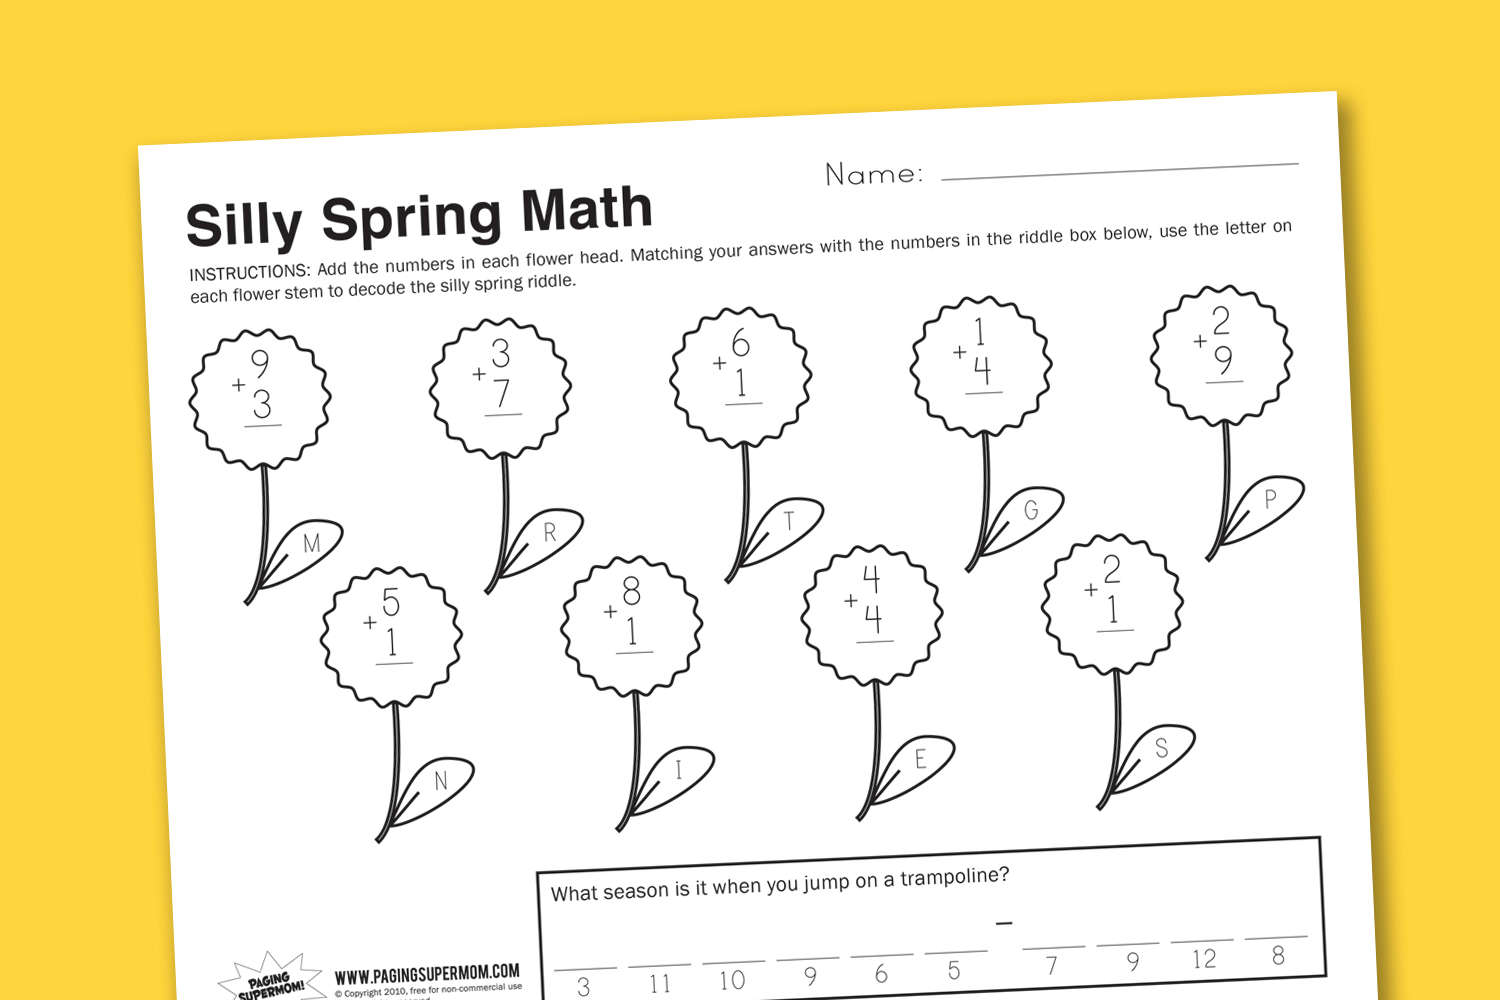 Worksheet Wednesday Silly Spring Math